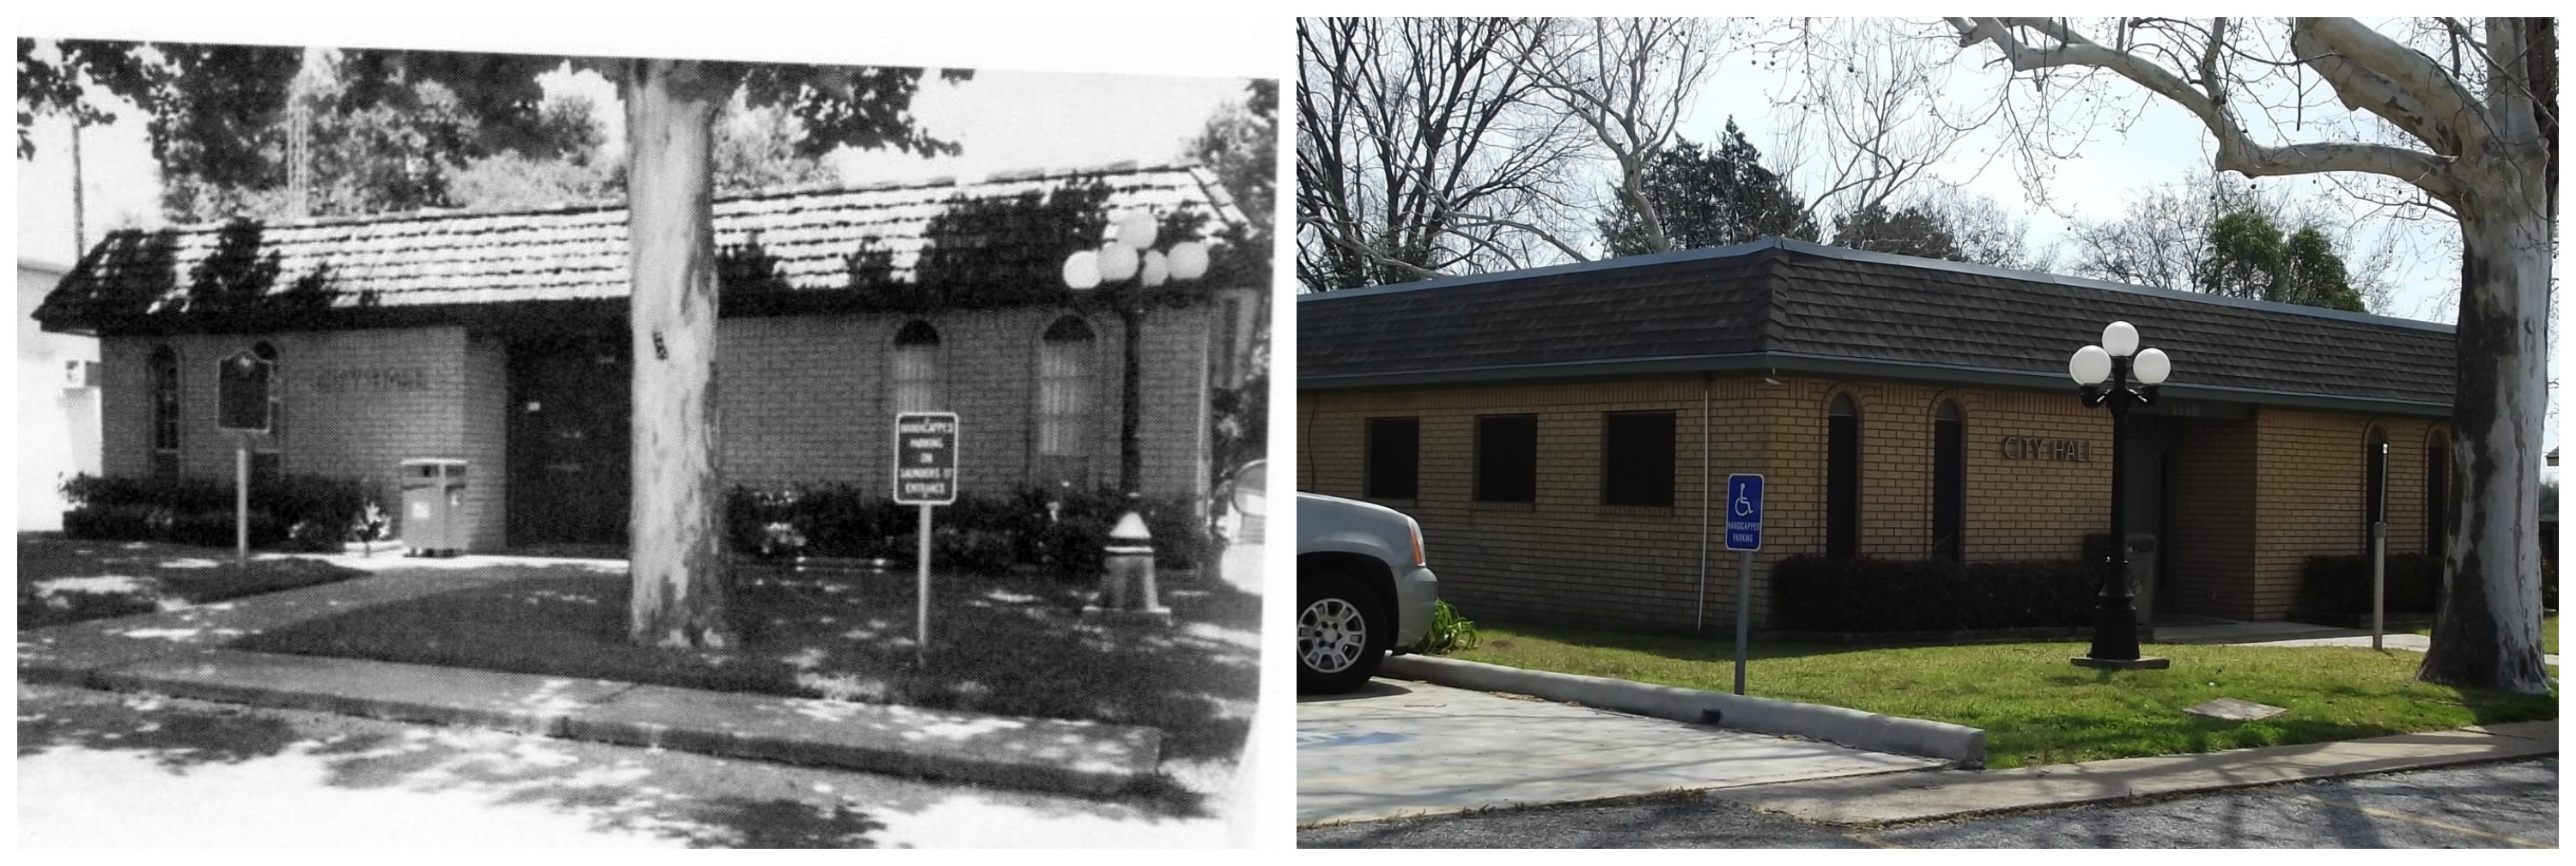 Waller City Hall 1995 & 2014